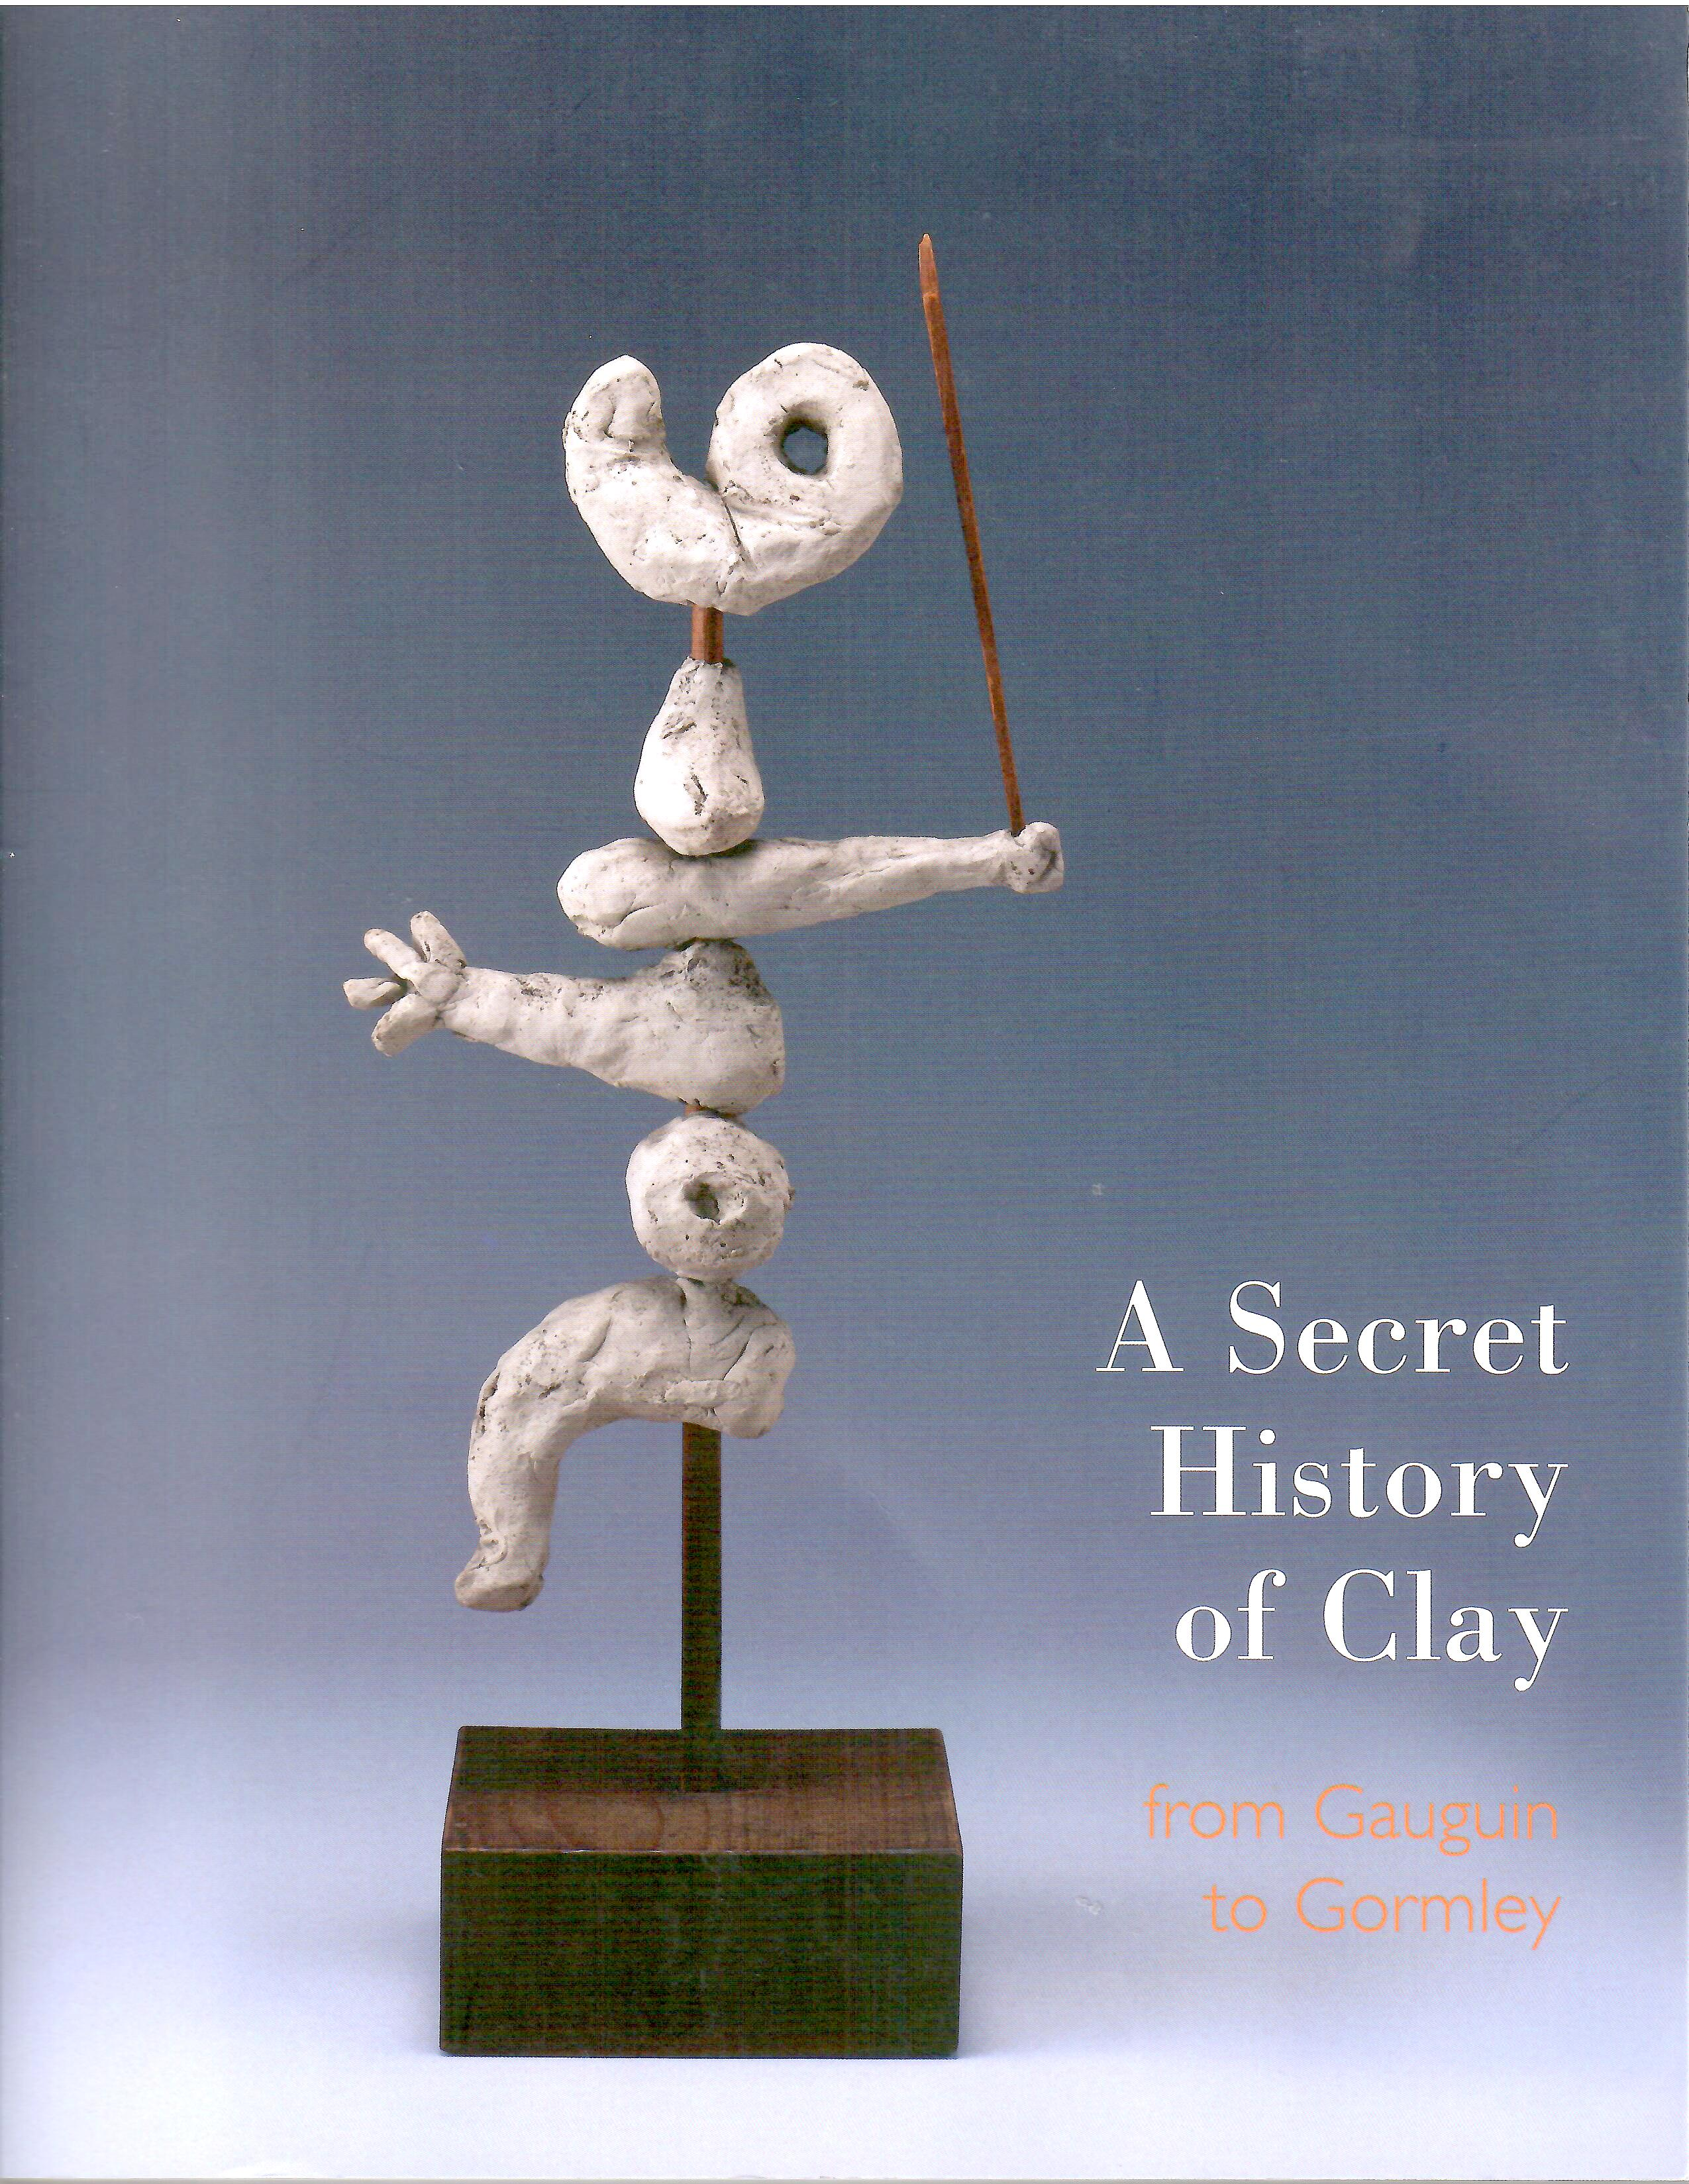 Image for From Gauguin to Gormley; A SECRET HISTORY OF CLAY